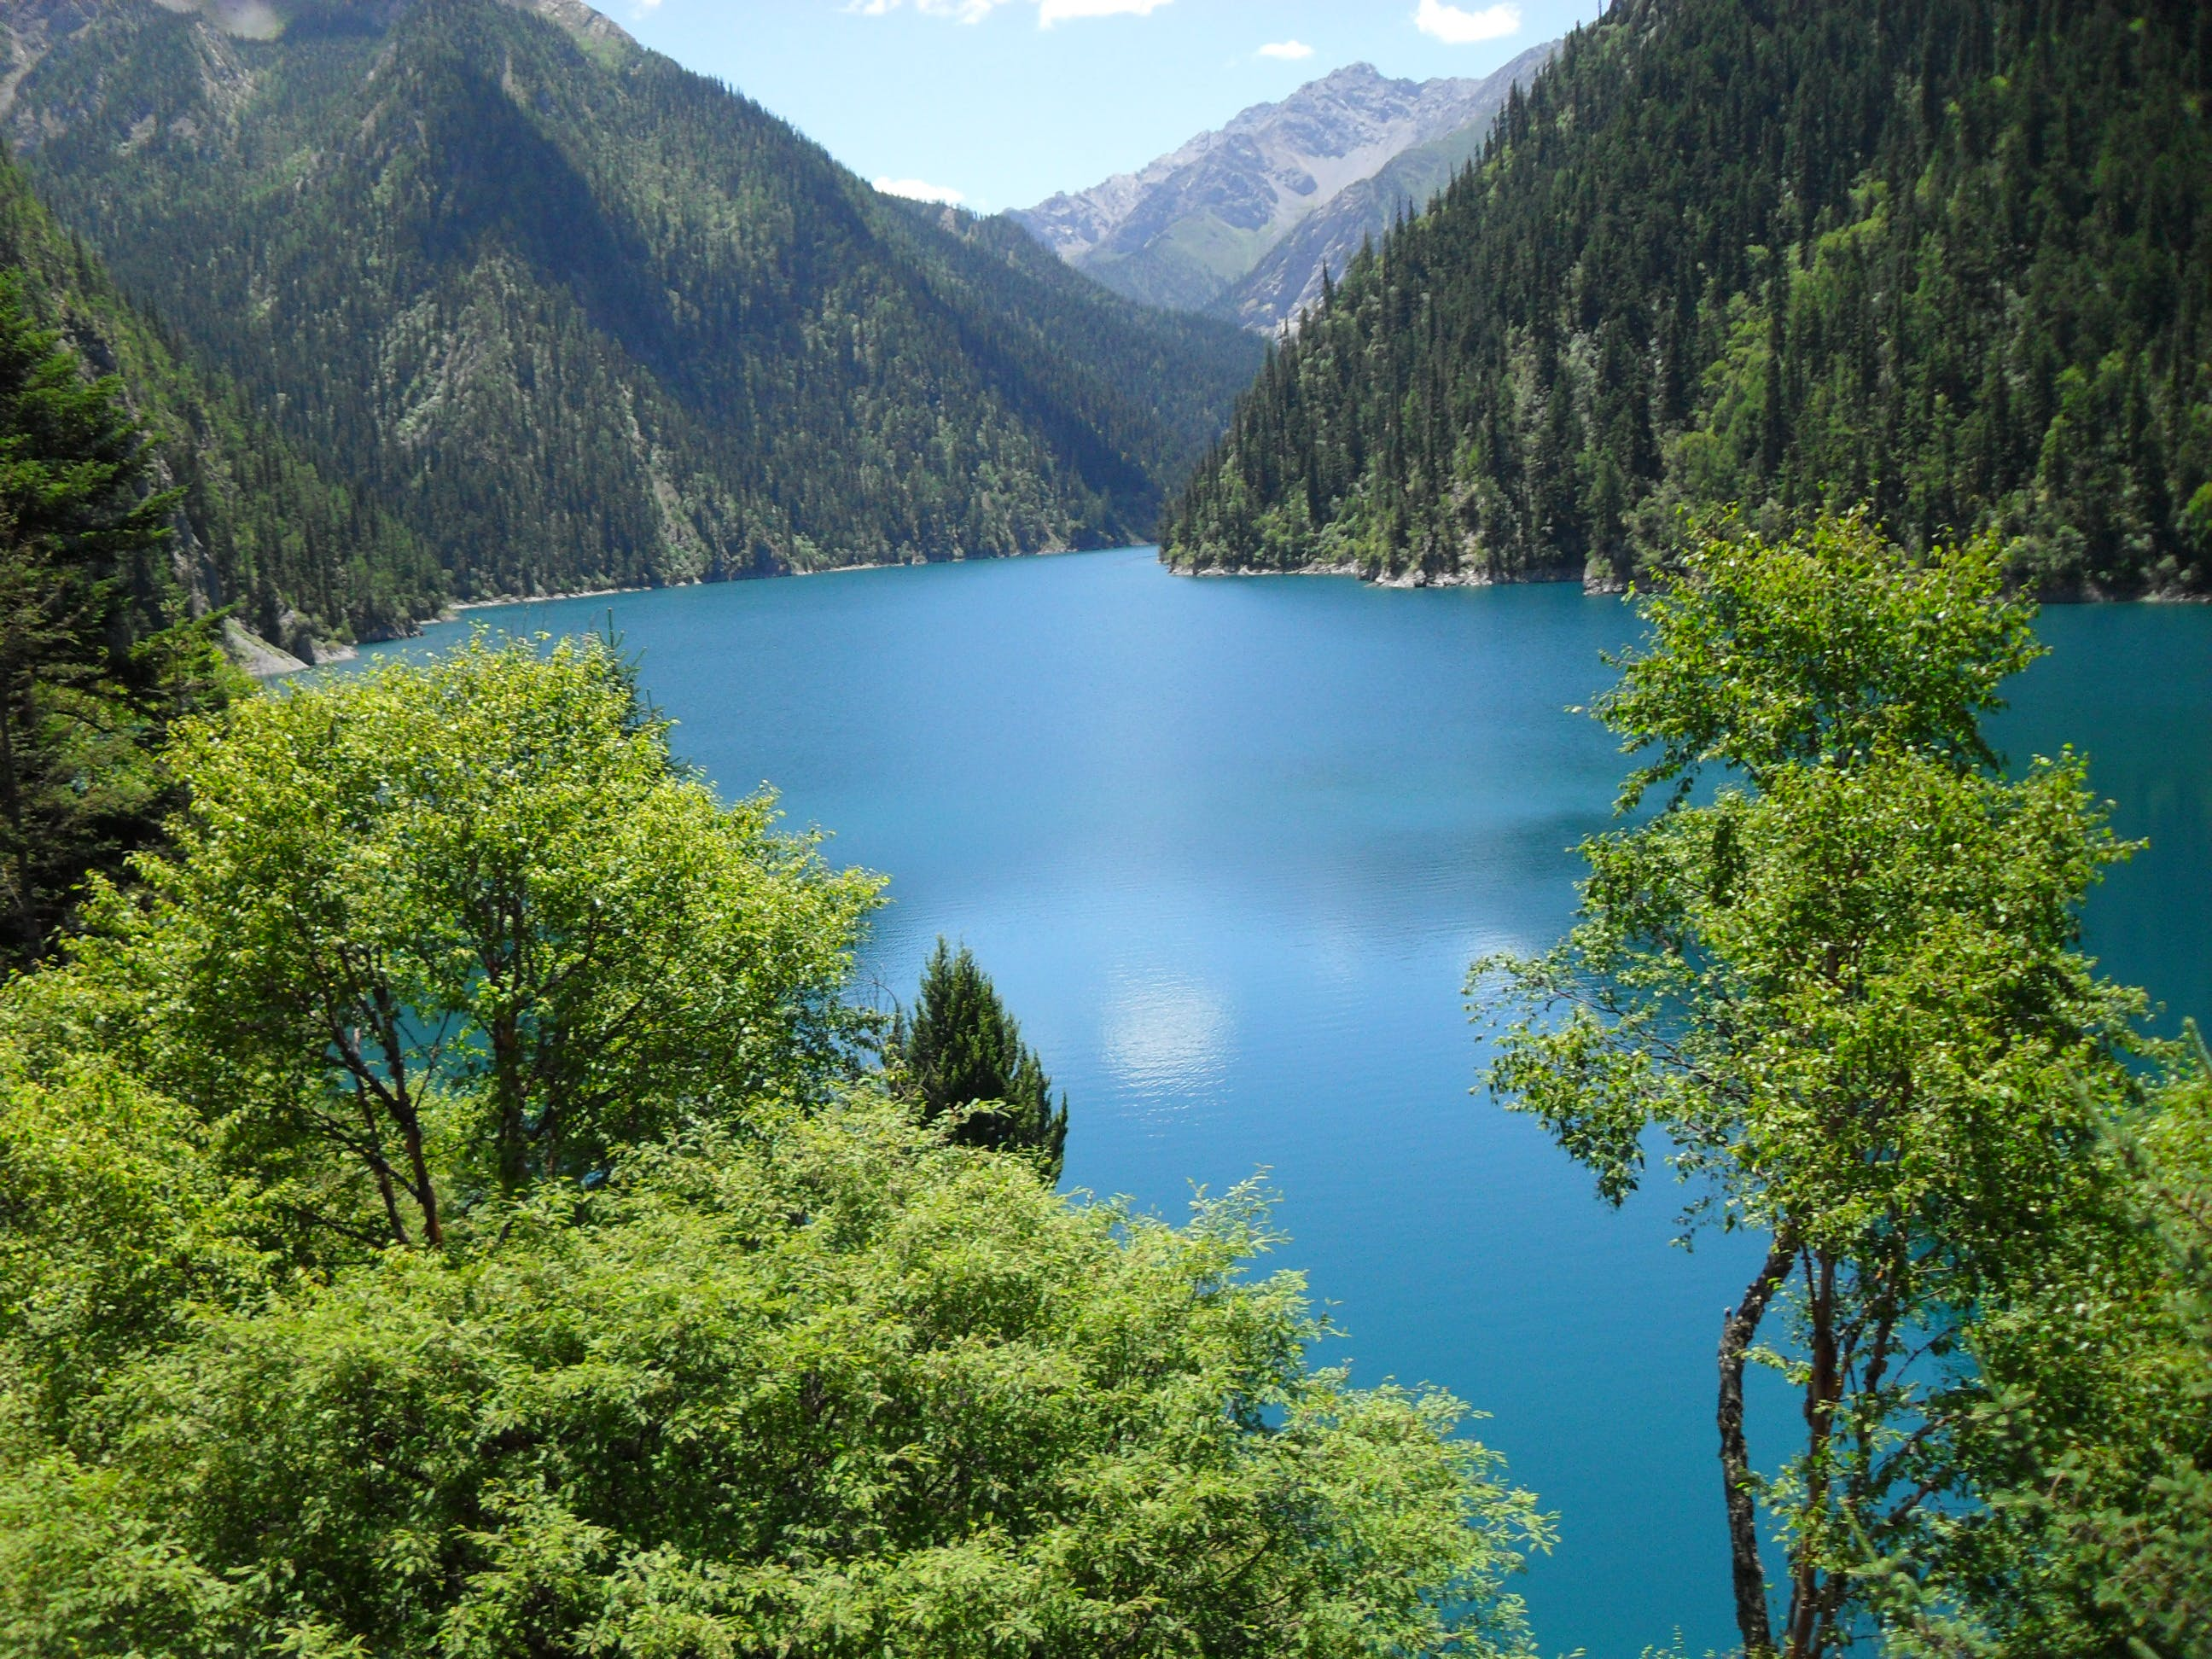 Blue Body of Water and Green Mountains Long Exposure Photography